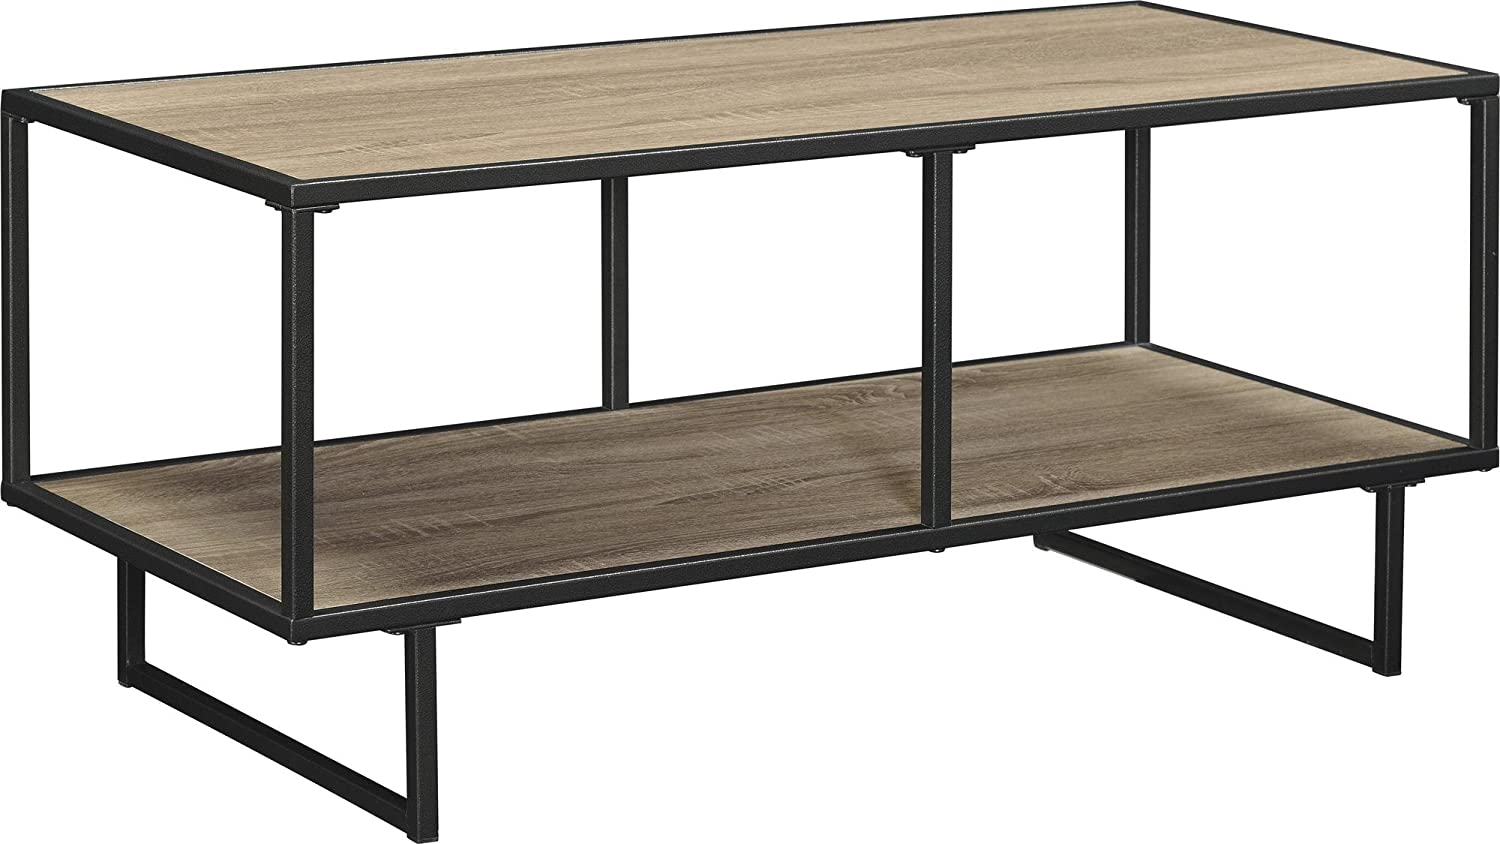 Ameriwood Home Emmett TV Stand/Coffee Table for TVs up to 42 wide, Weathered Oak Dorel Home Furnishings 1745096PCOM